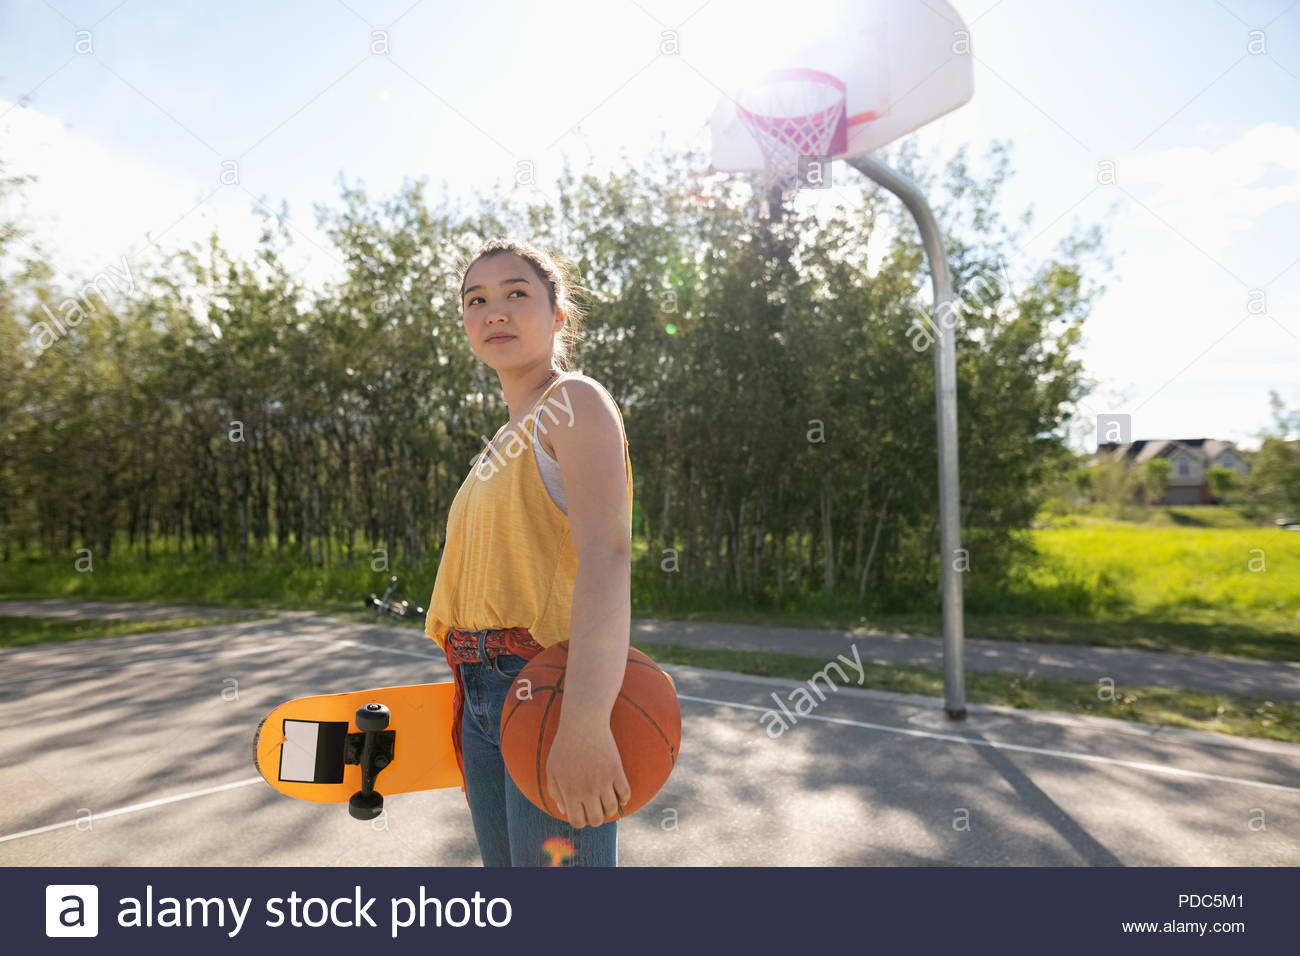 Confident, cool teenage girl with skateboard and basketball on sunny park basketball court - Stock Image